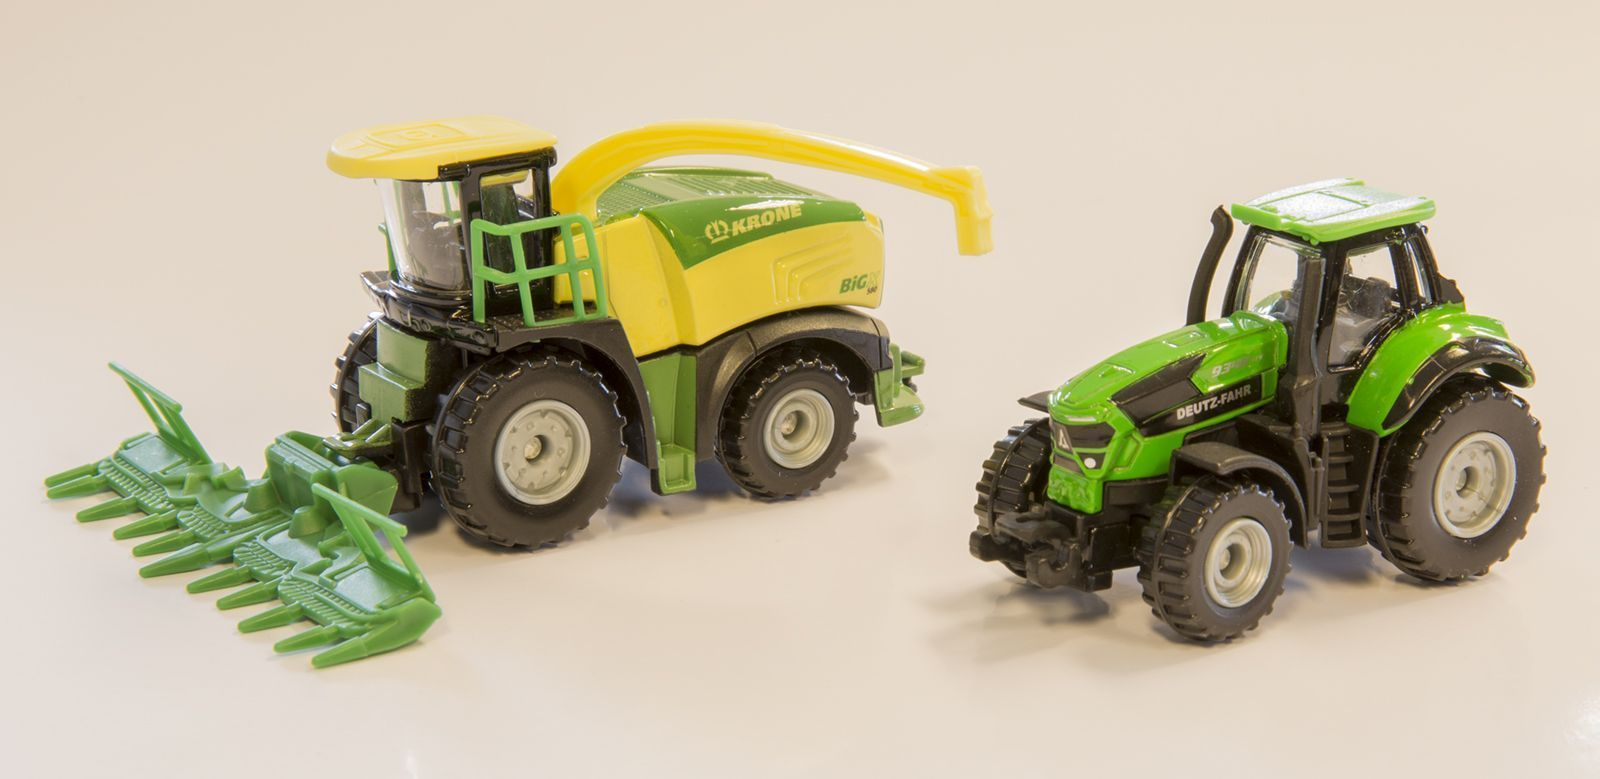 Krone Big X580 Forage Harvester + Deutz-Fahr TTV9340 Tractor